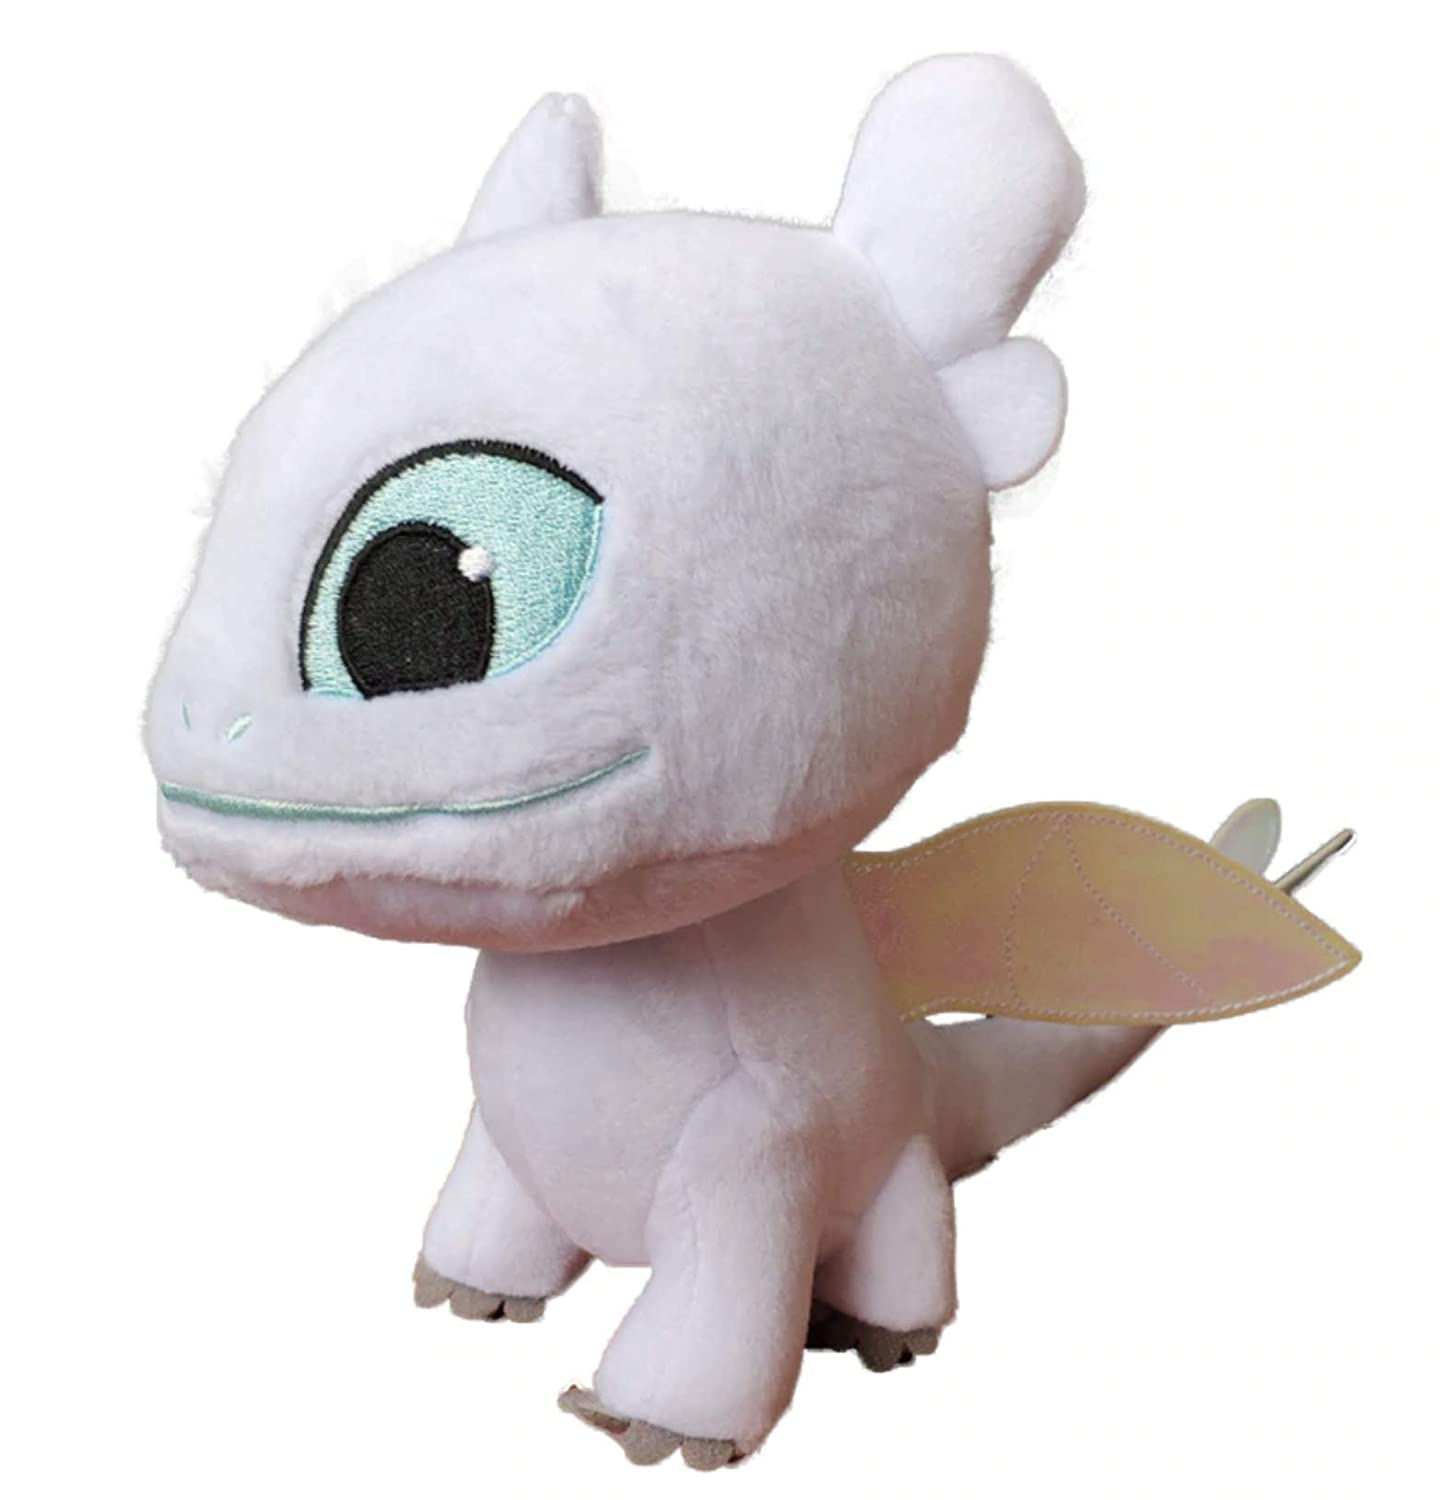 How to Train Your Dragon 3 Light Fury Plush Doll White Dragon Stuffed Toy Gifts